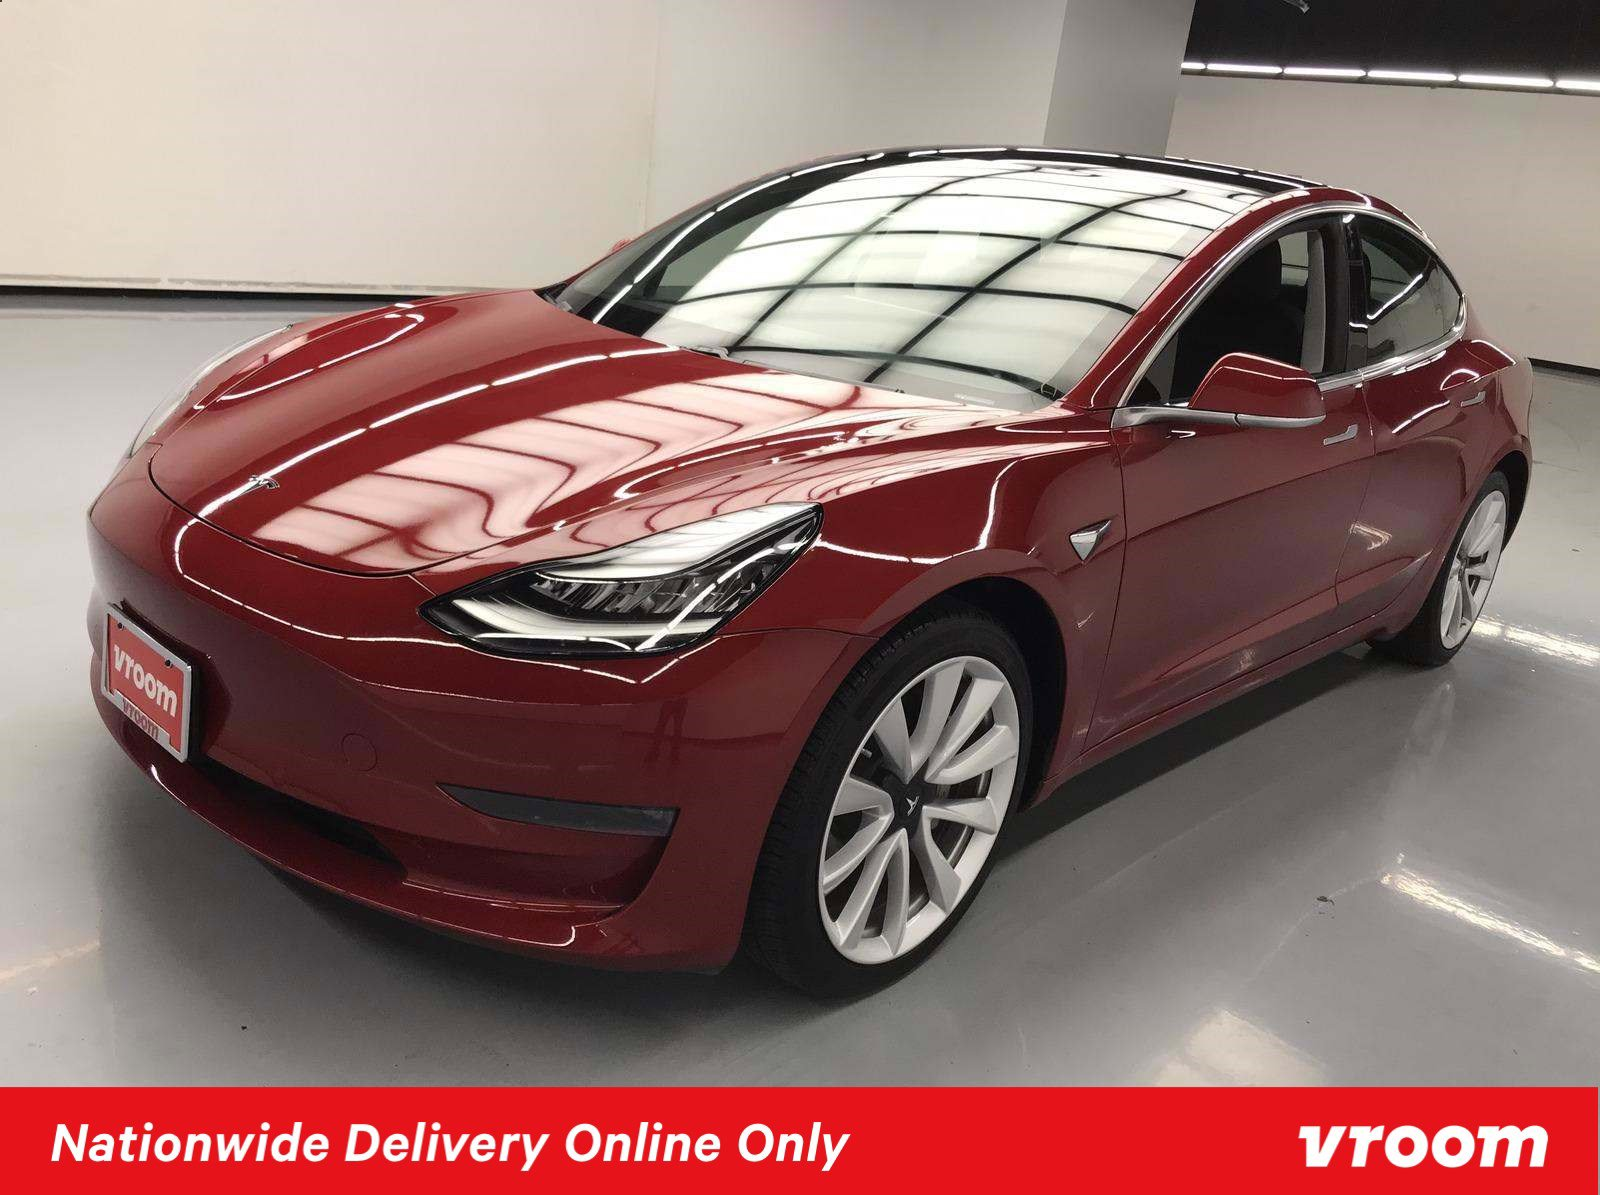 2019 Tesla Model 3 Long Range image